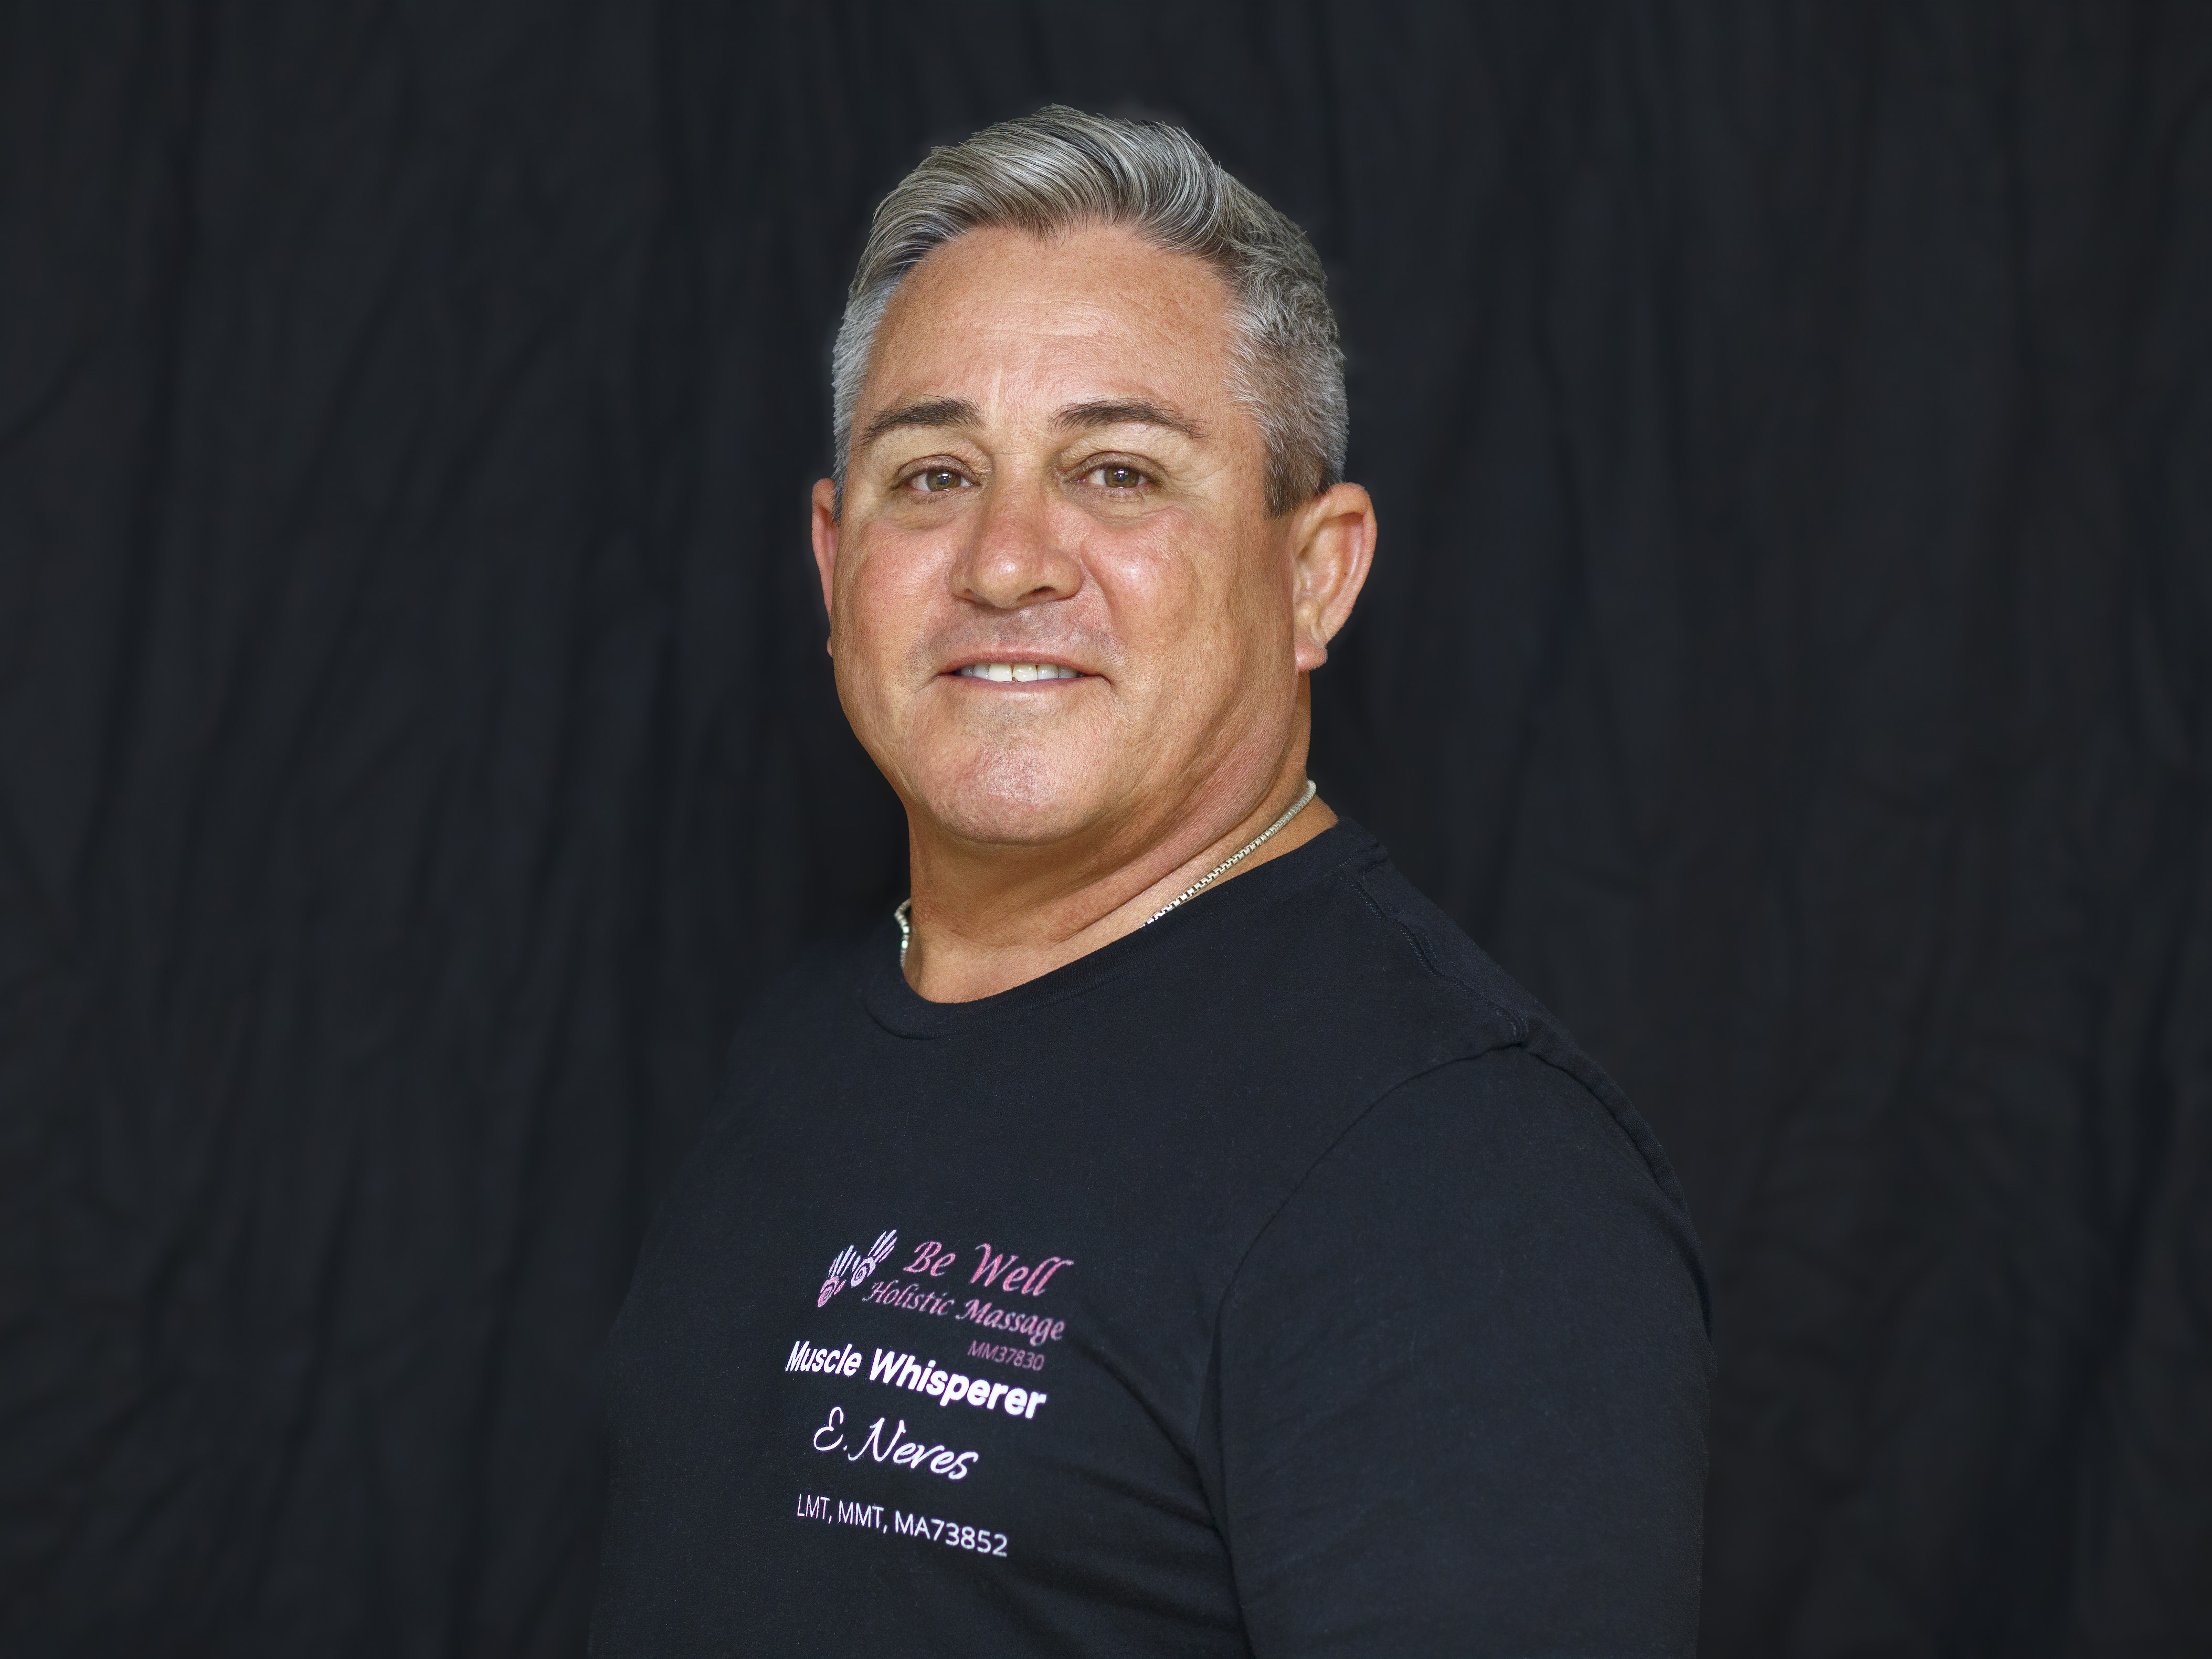 Euripedes Neves, MA73852 licensed massage therapist in Ocala, Florida